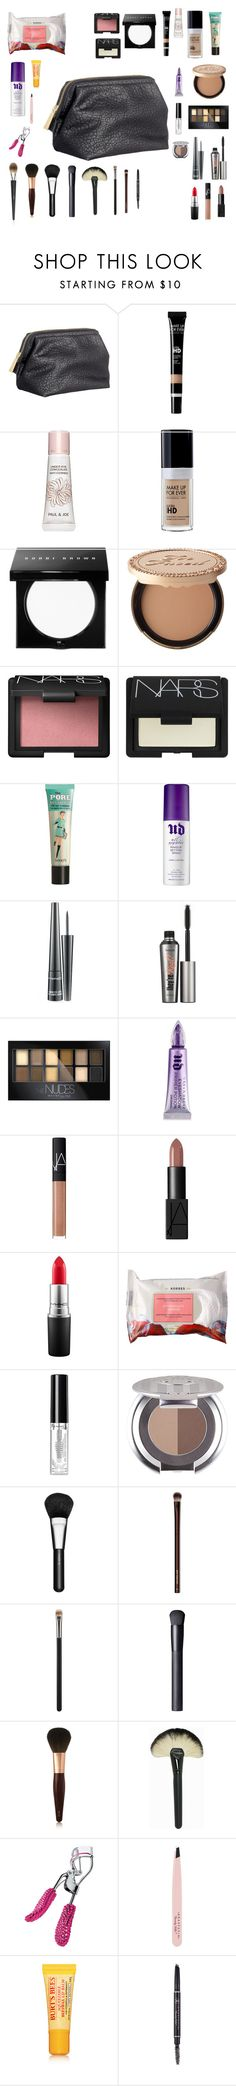 """What's in my makeup bag"" by pendleton-2001 ❤ liked on Polyvore featuring beauty, H&M, Paul & Joe Beaute, Bobbi Brown Cosmetics, Too Faced Cosmetics, NARS Cosmetics, Benefit, Urban Decay, MAC Cosmetics and Maybelline"